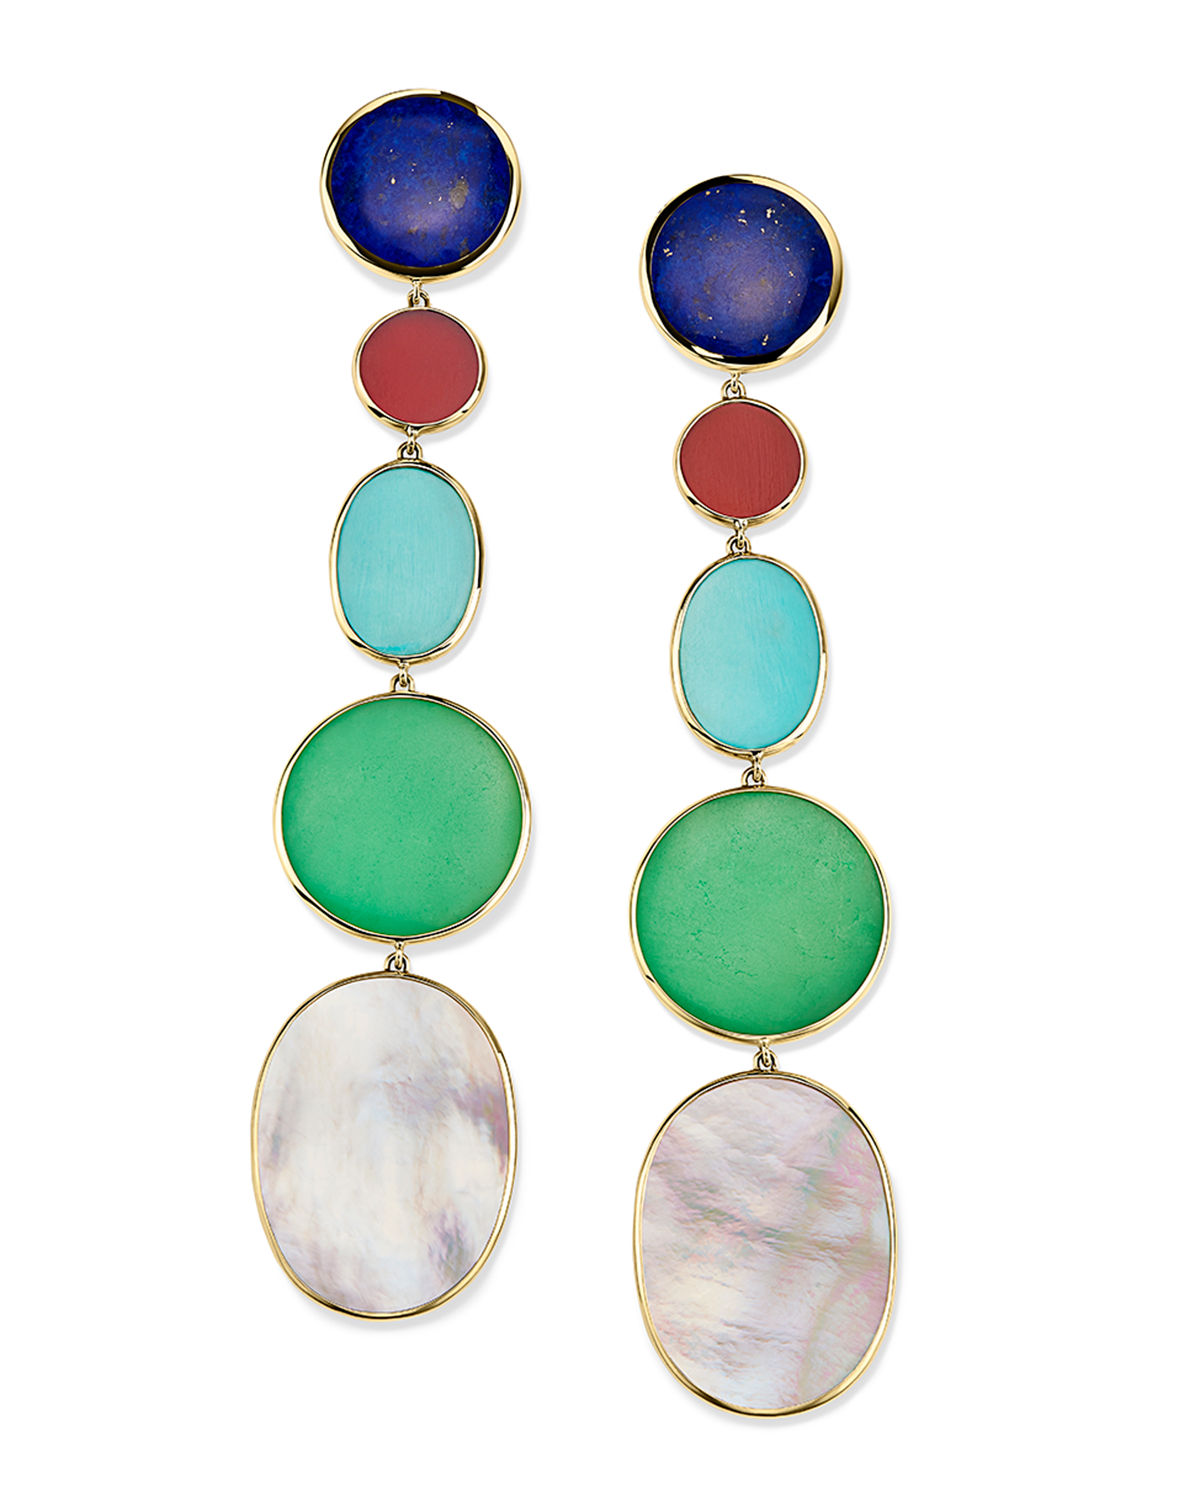 Ippolita Accessories 18K POLISHED ROCK CANDY LONG LINEAR EARRINGS IN VIAREGGIO